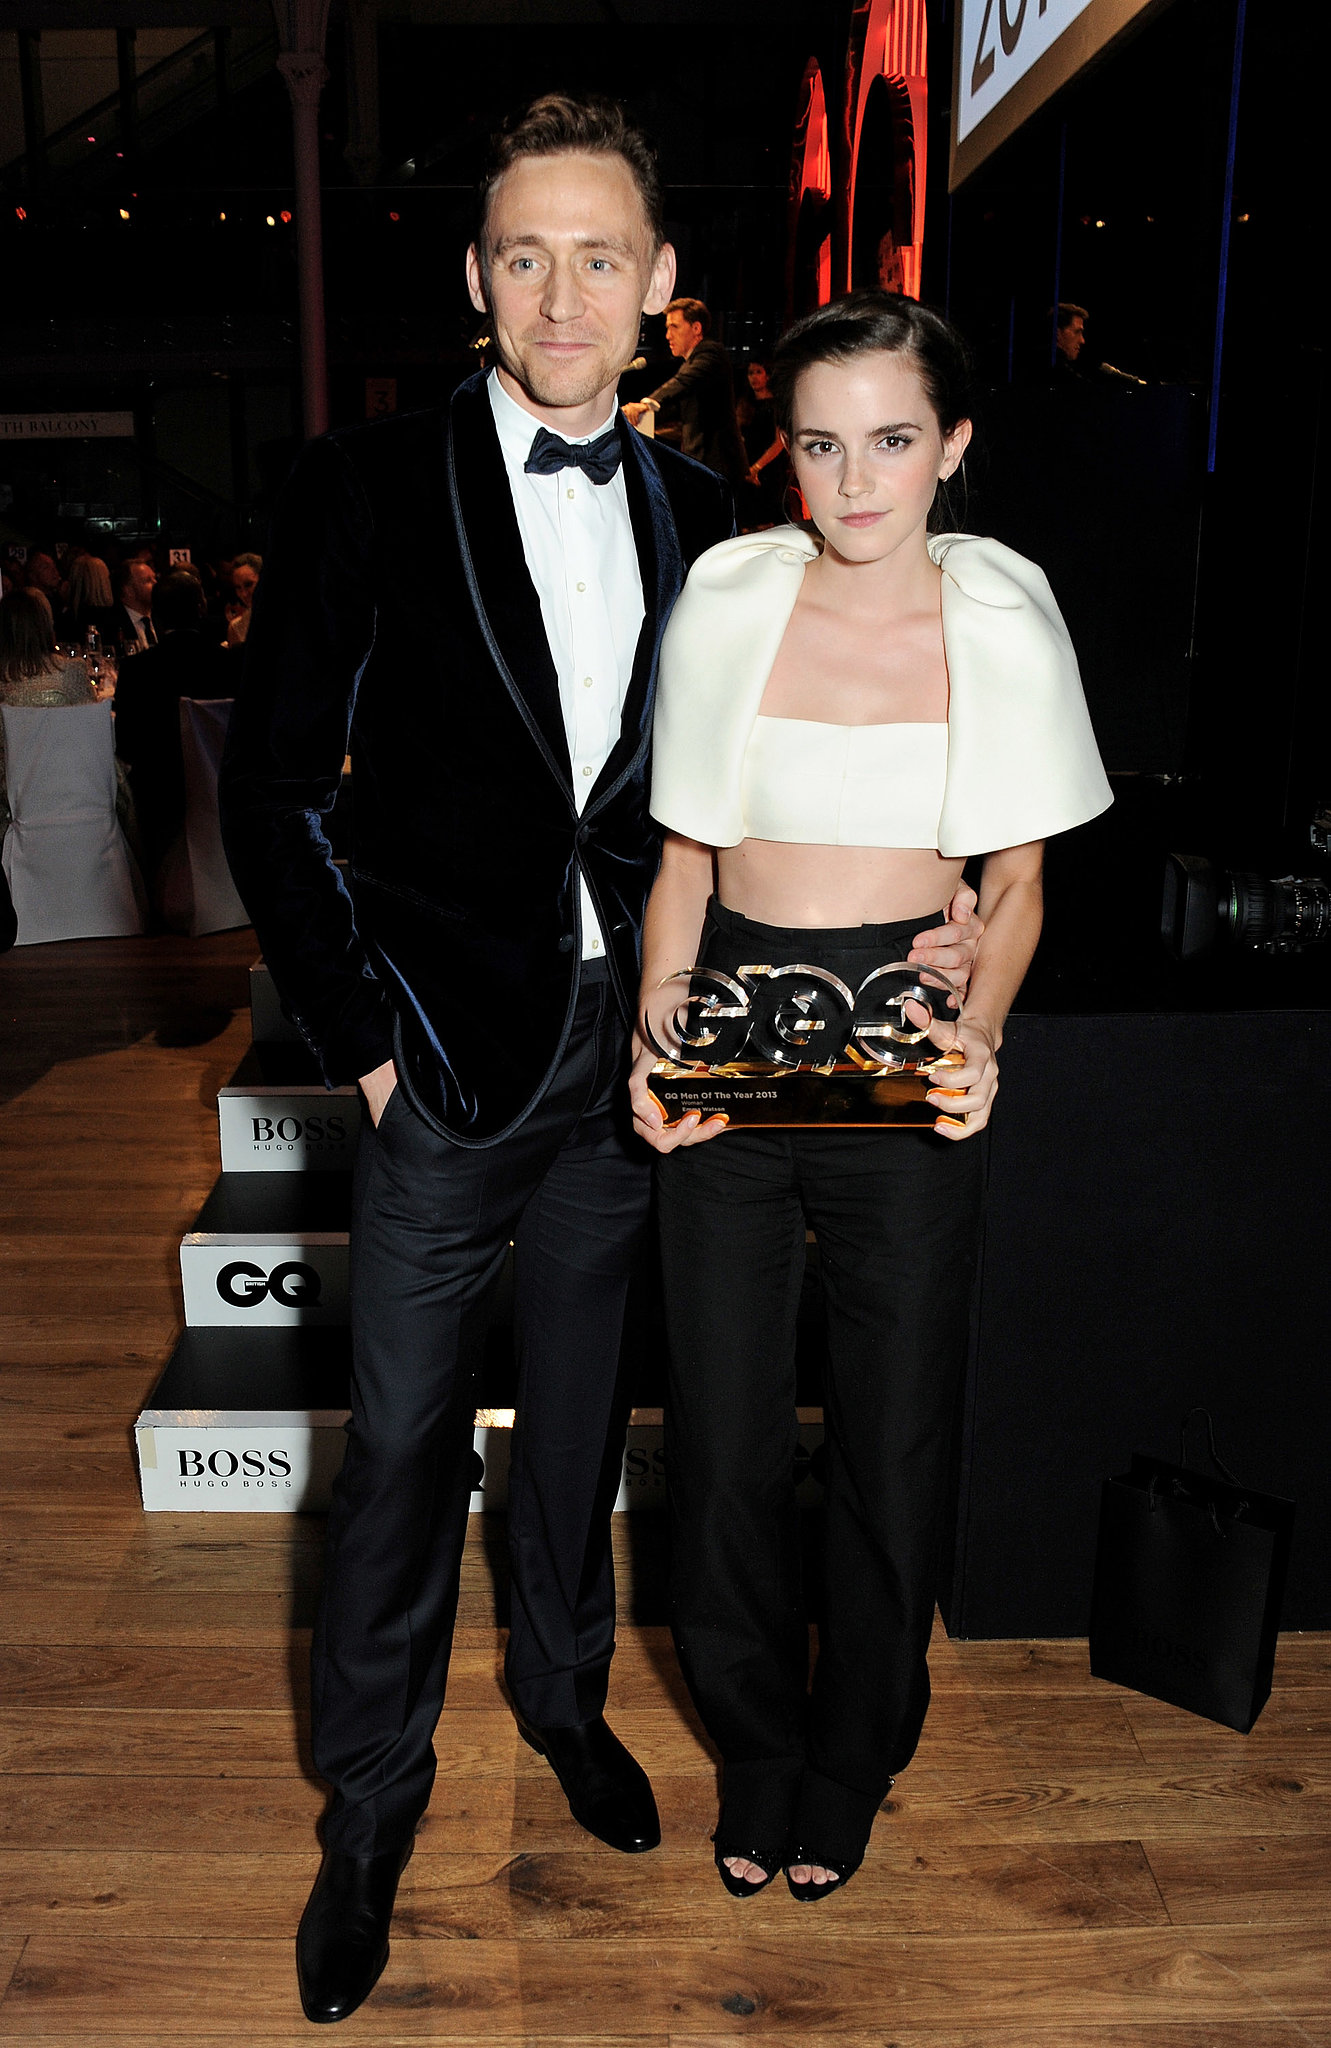 Emma Watson posed with her award alongside Tom Hiddleston.